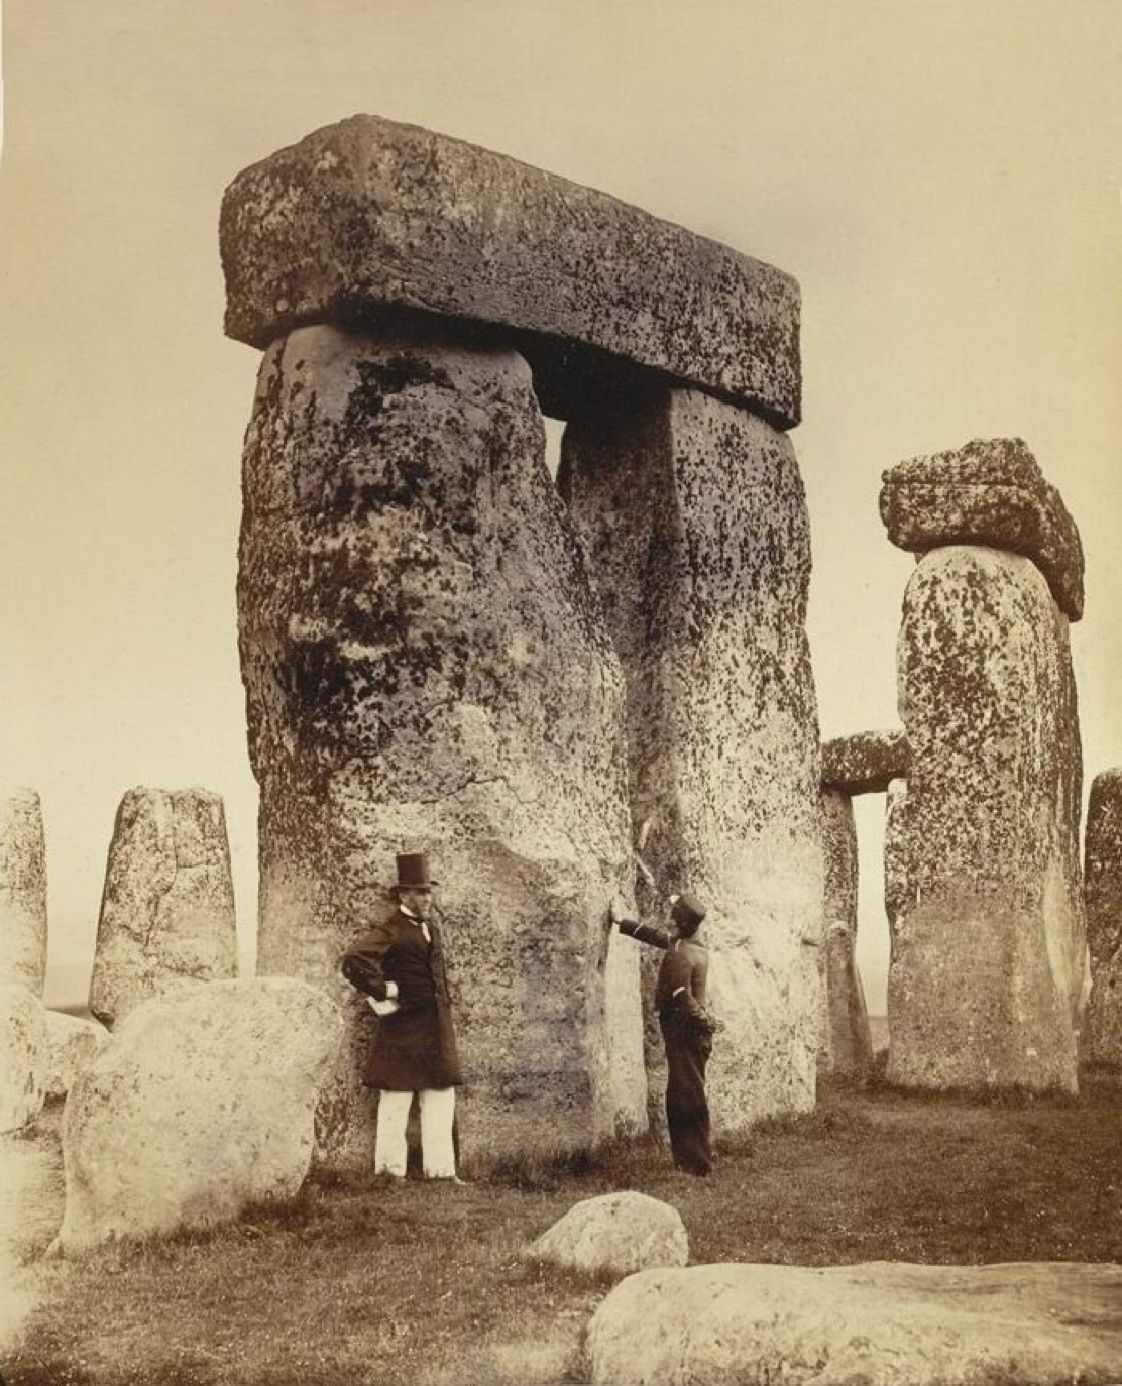 Pin by ilopez1740 on The Past/History/Vintage Stonehenge